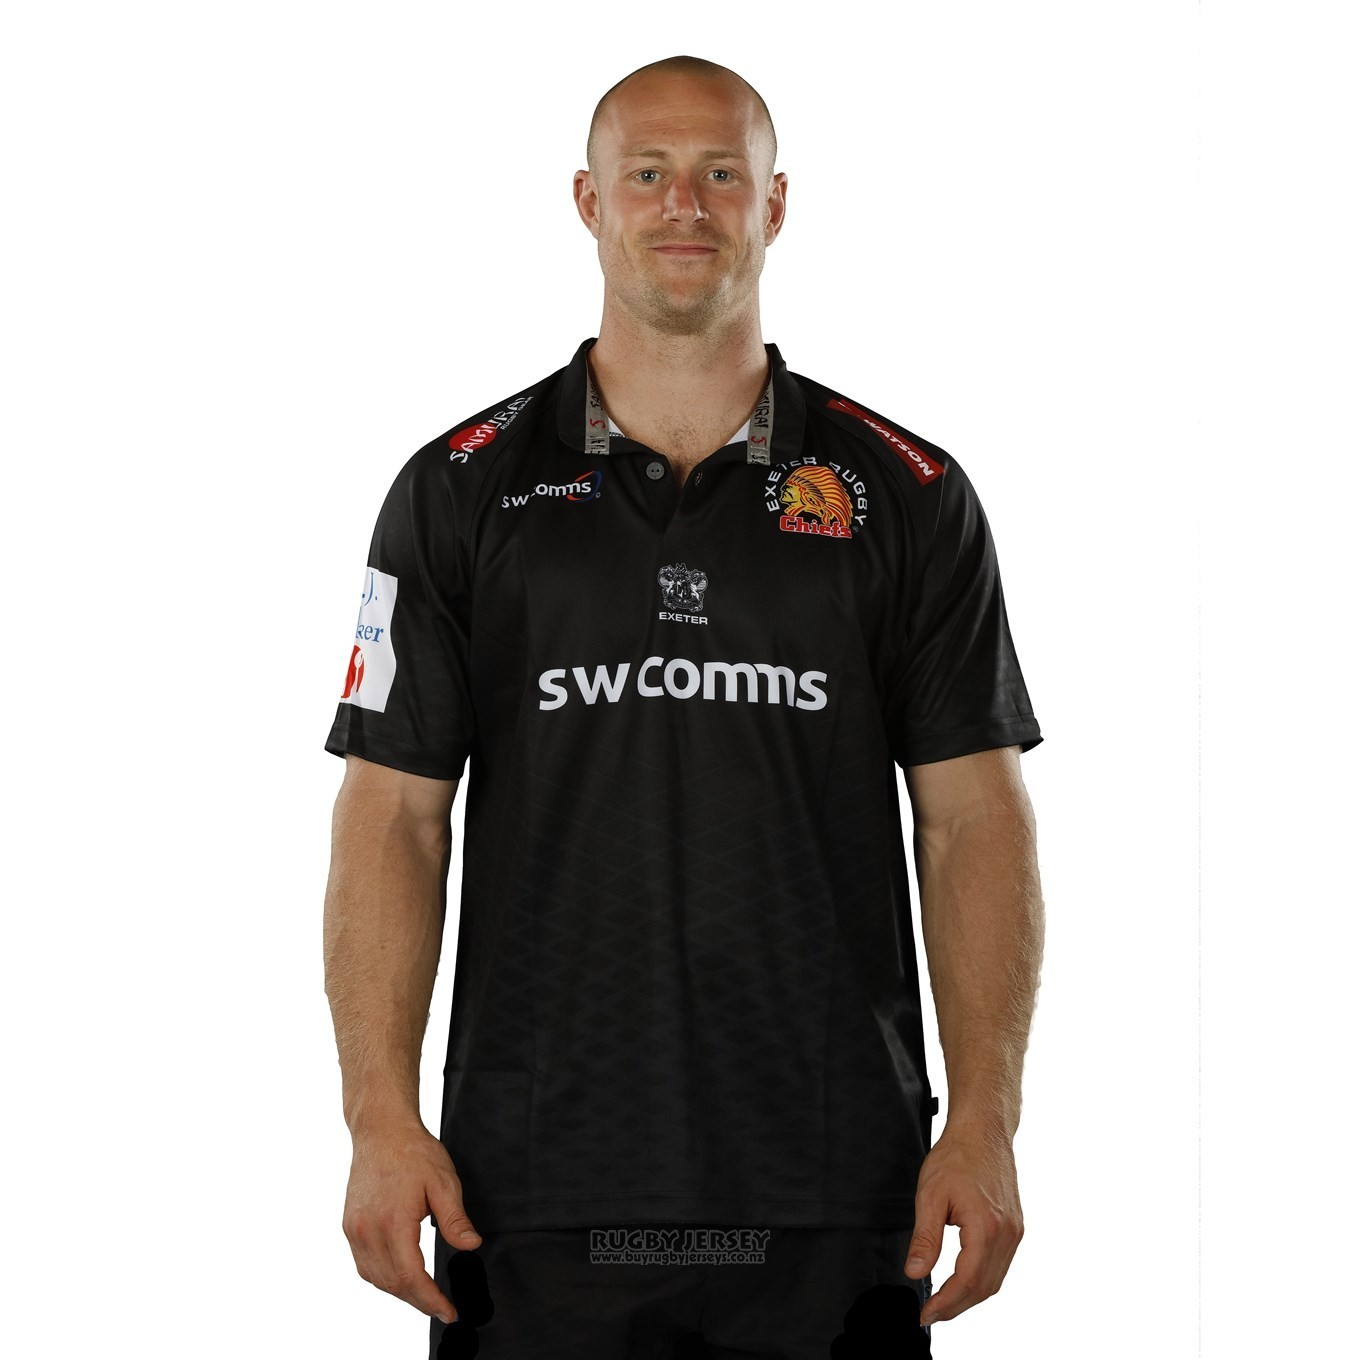 d37b1b21a13 Jersey Exeter Chiefs Rugby 2017-18 Home | www.buyrugbyjerseys.co.nz